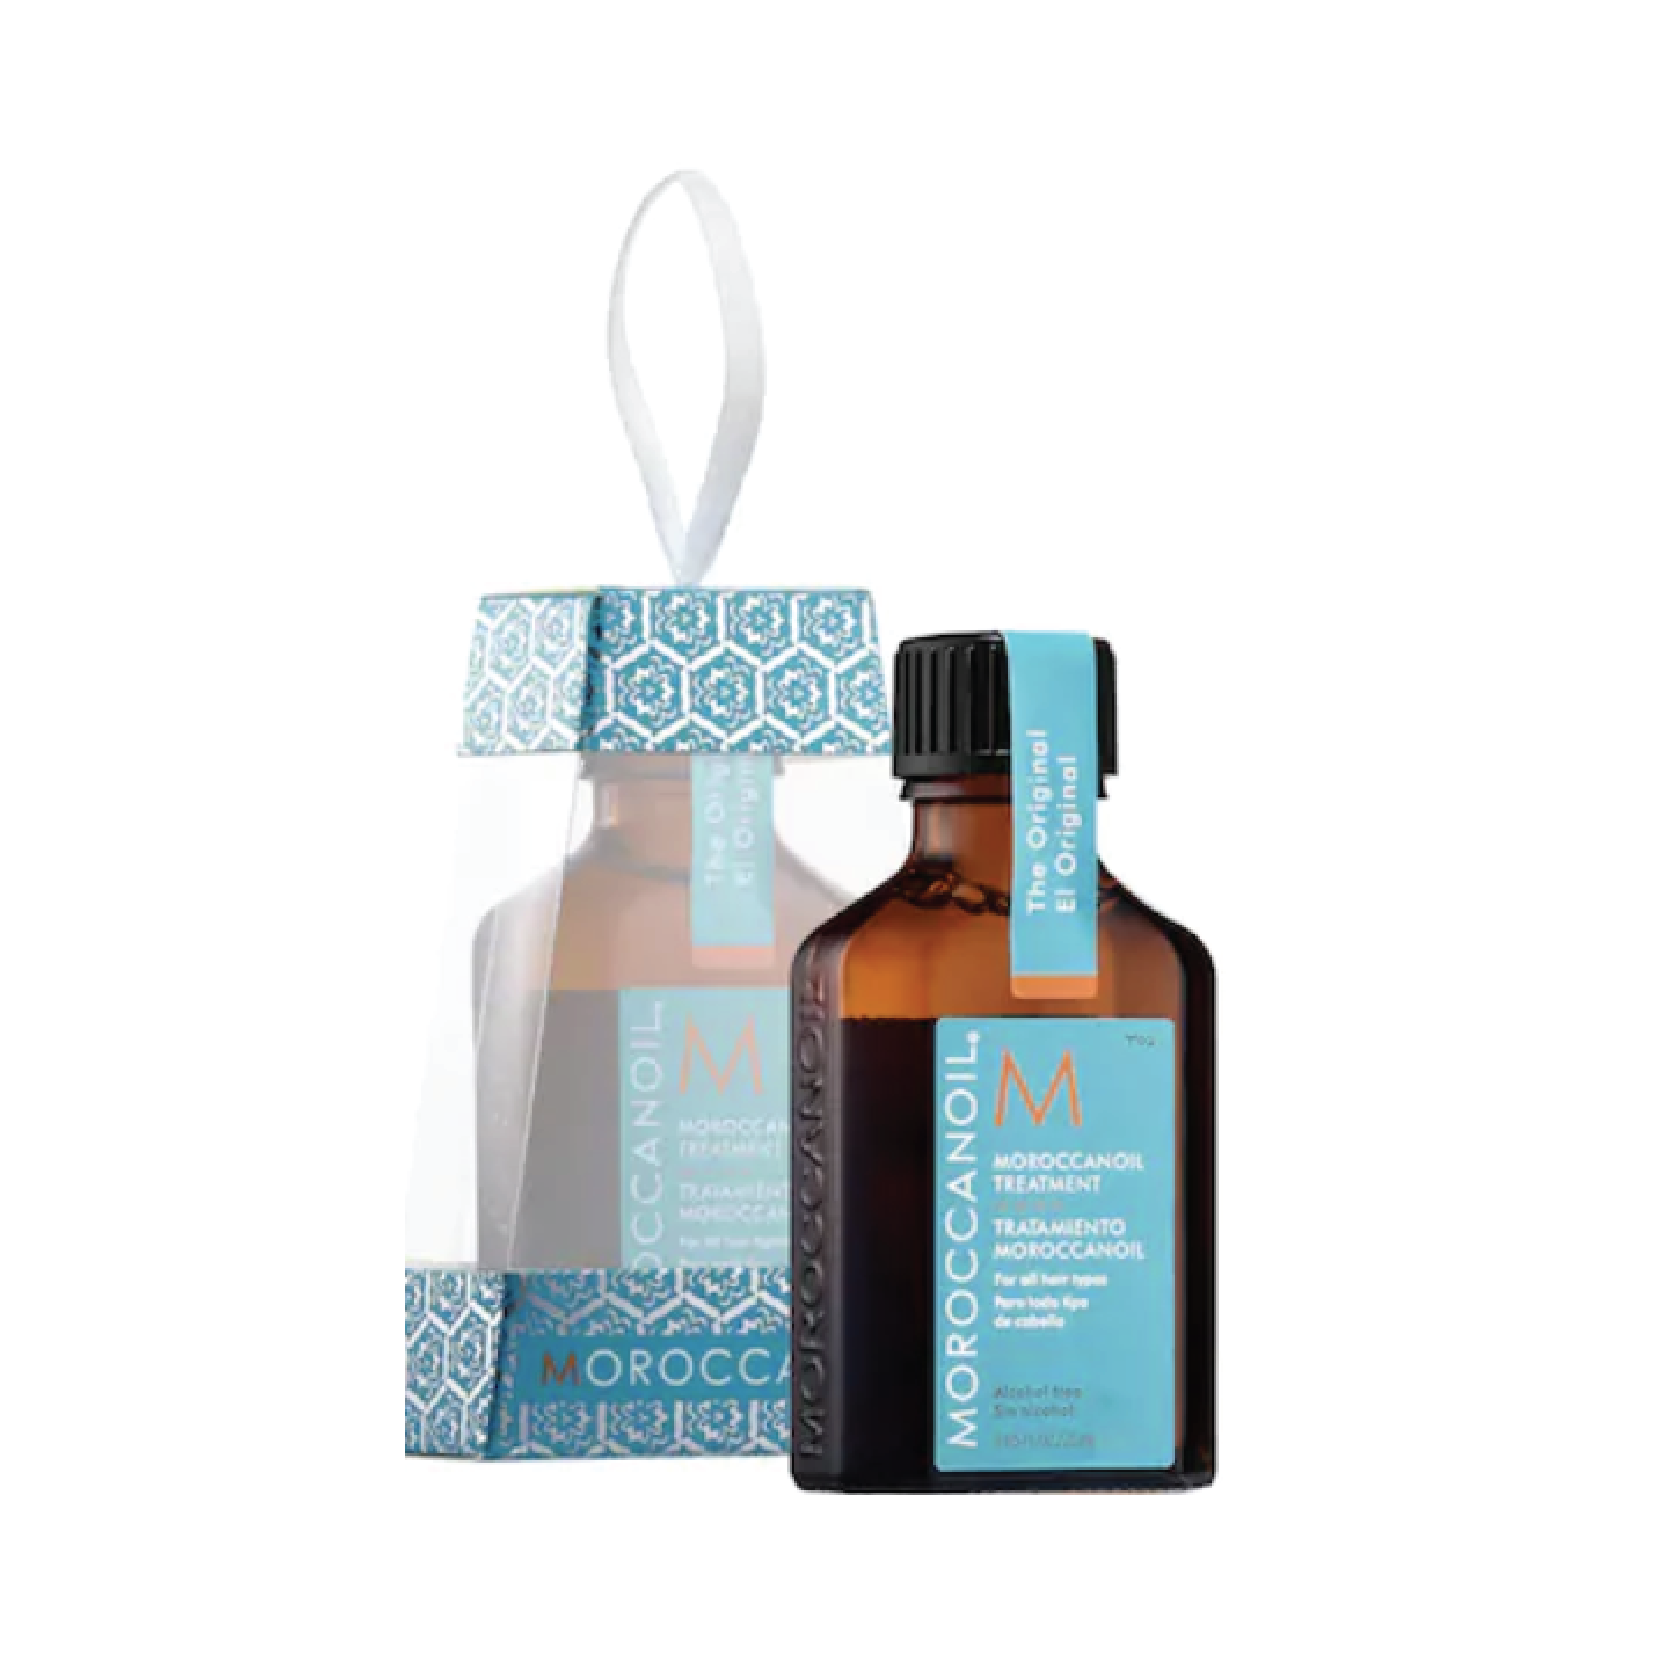 Moroccanoil Treatment Ornament - $15 at SephoraI used to use this oil religiously on my strands before getting extensions. It's great for locking in moisture and protecting against heat damage, and smells incredible.